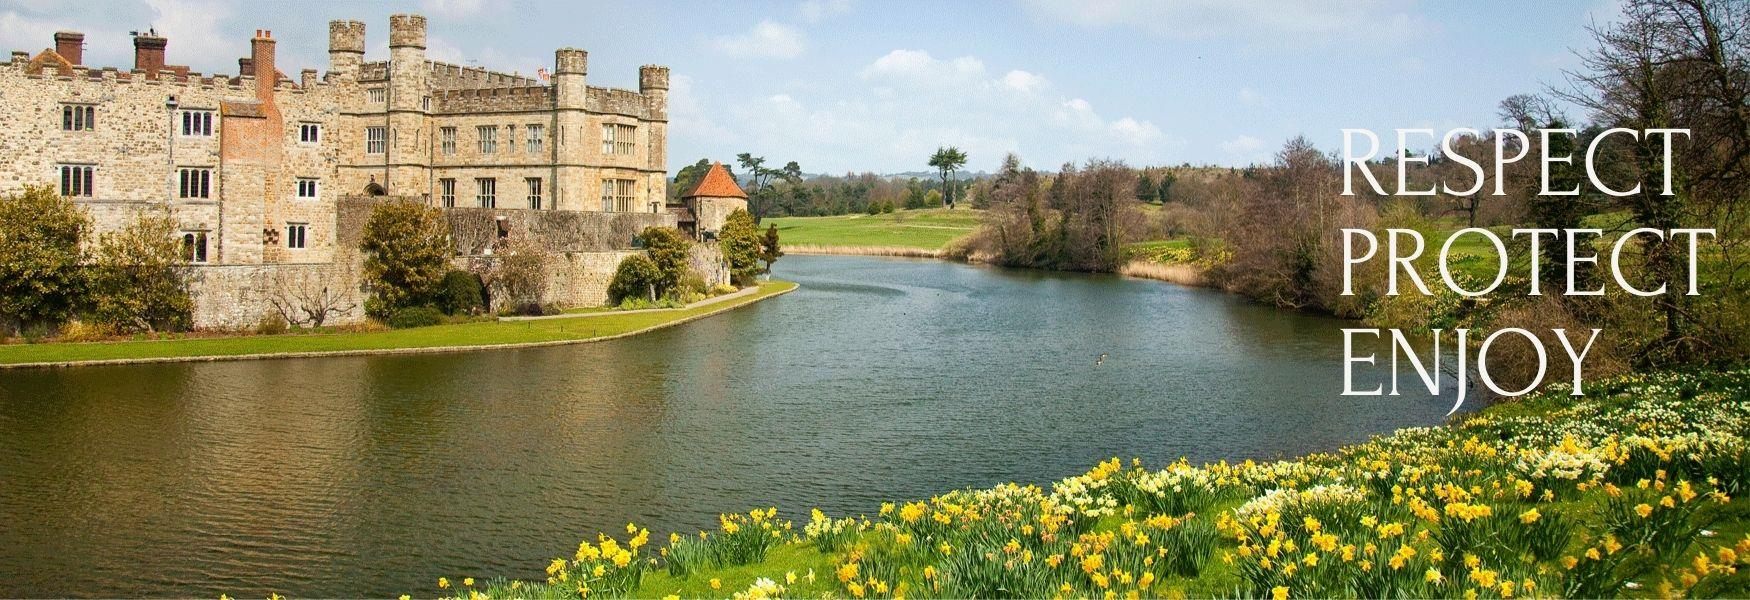 Daffodils at around the moat at Leeds Castle, Kent.